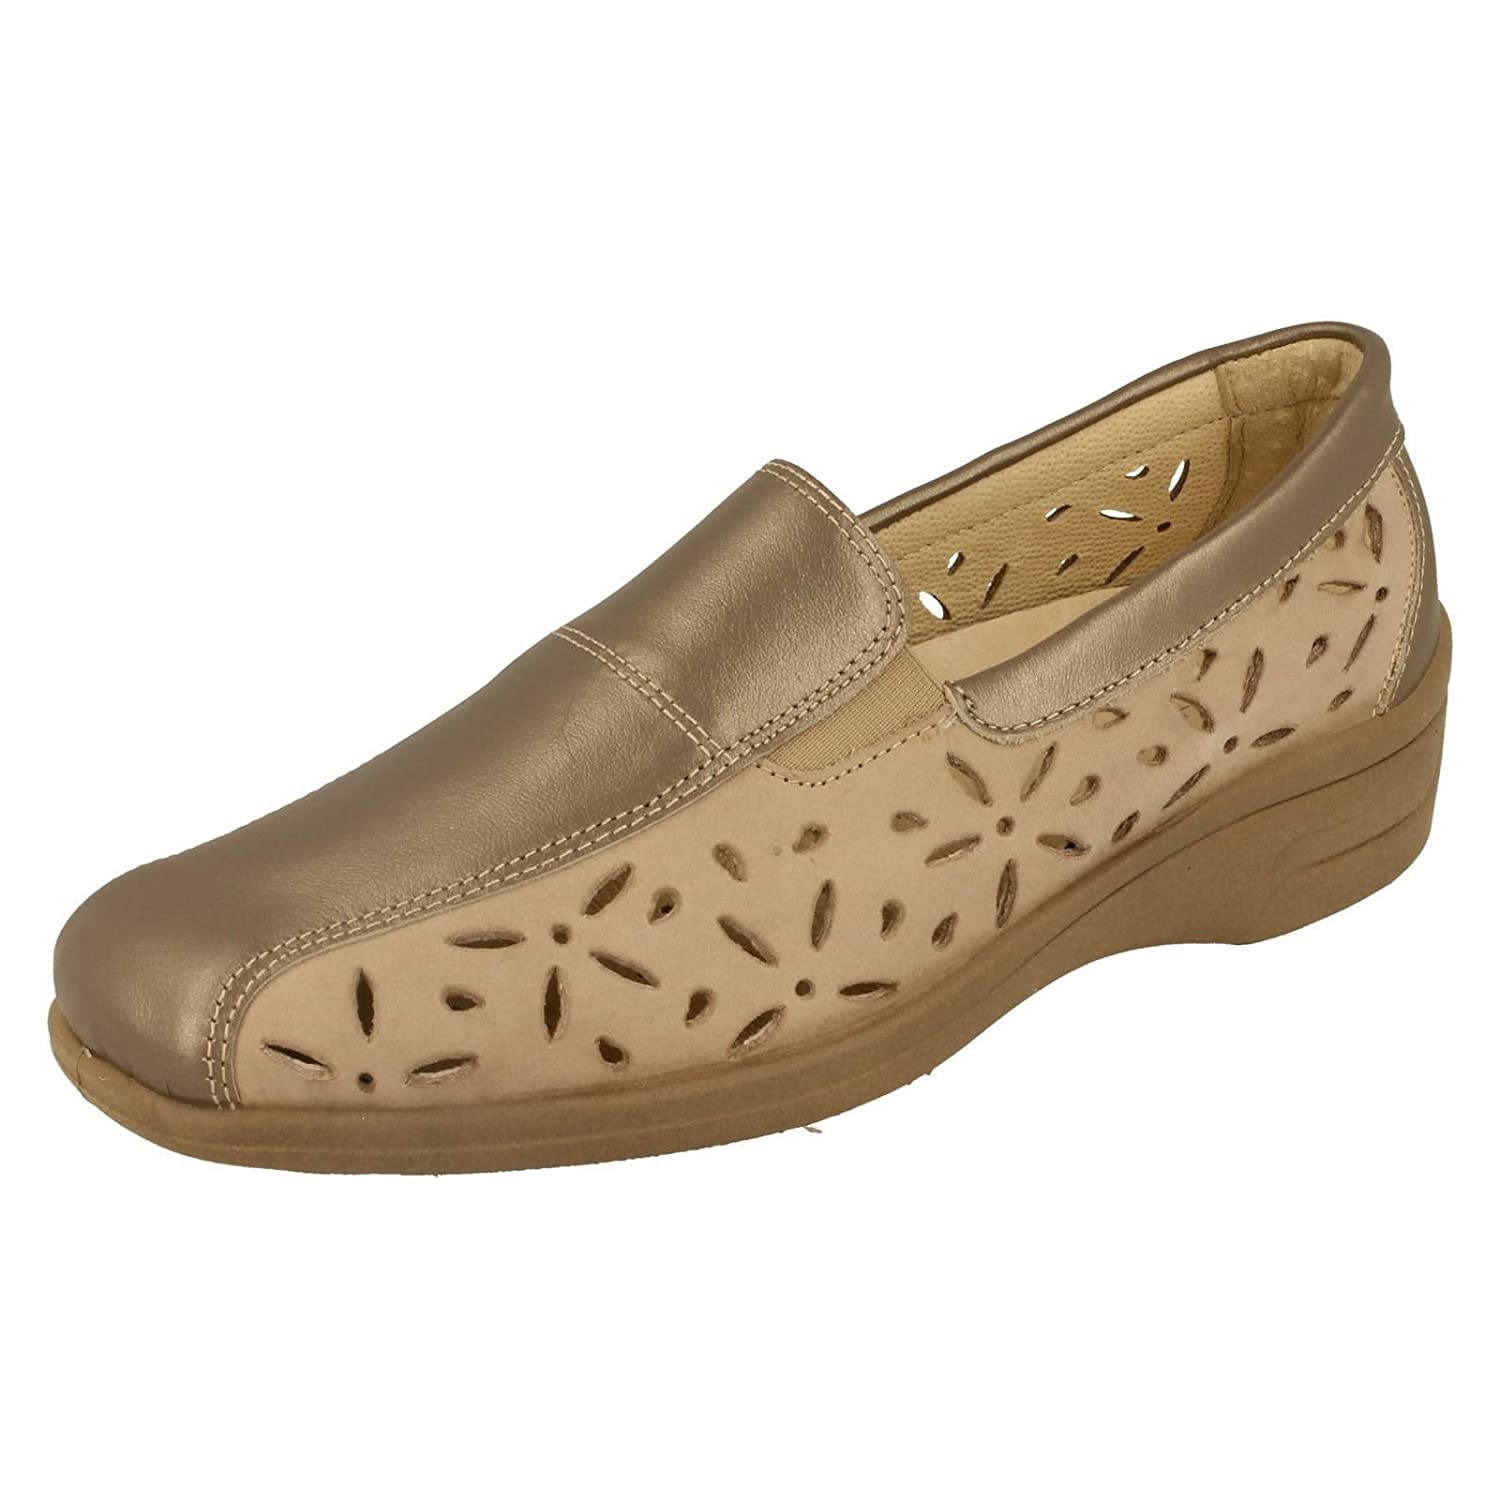 1044 Ladies Rohde Slip On Shoes